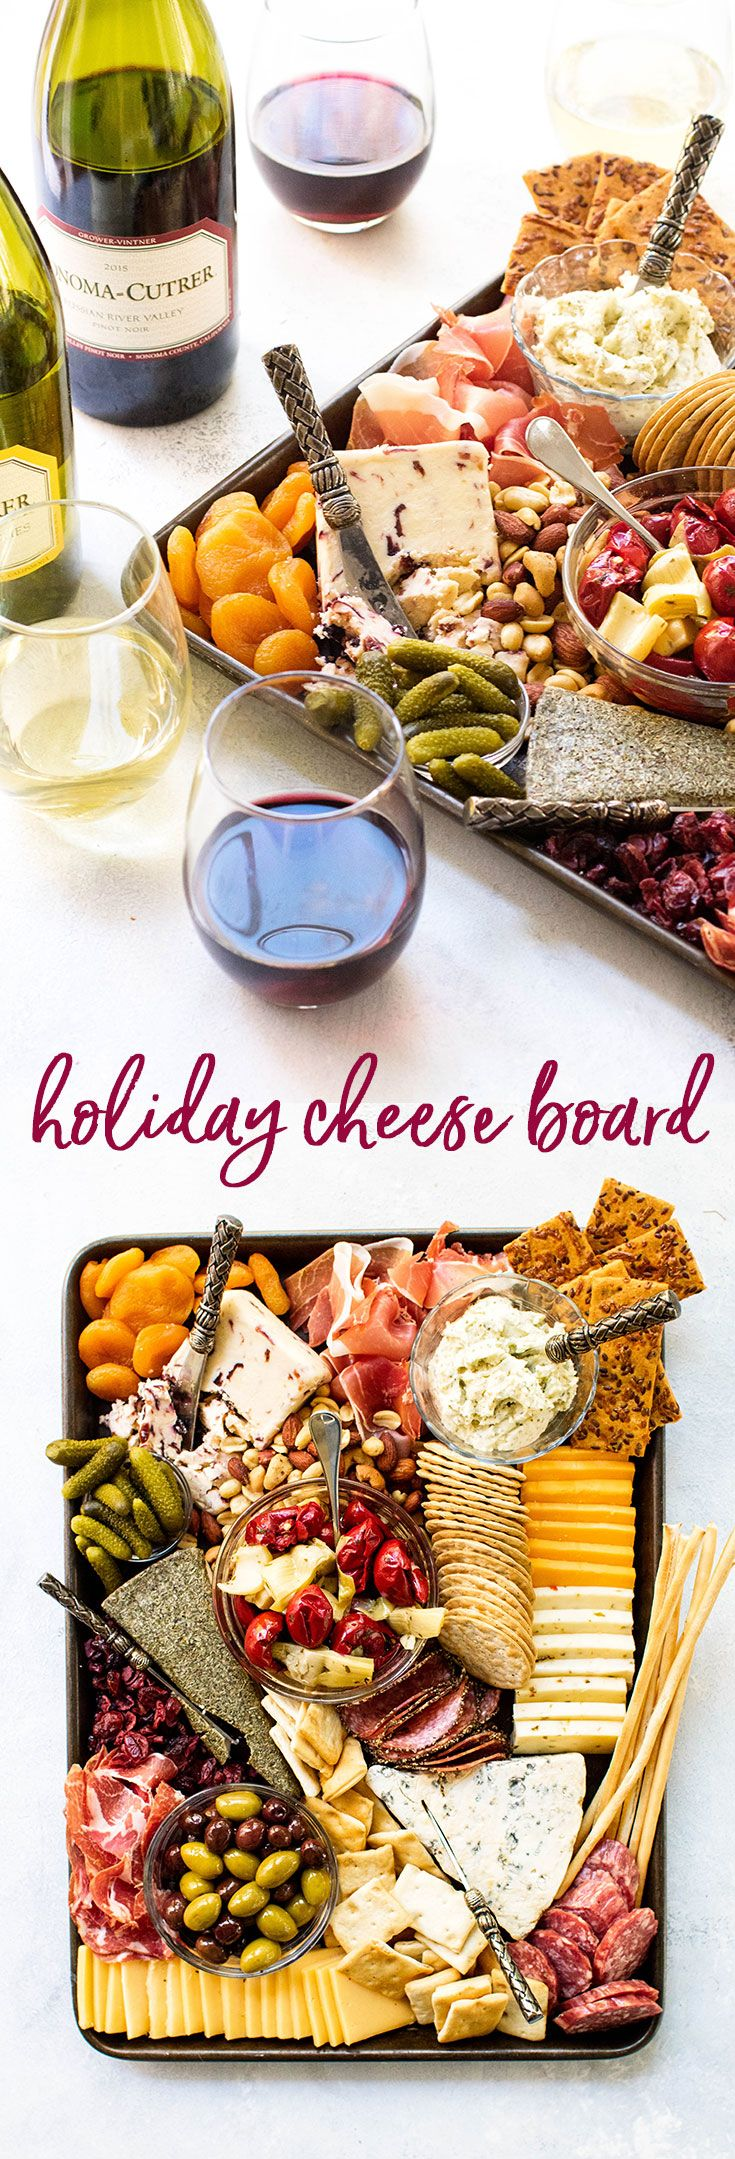 """You don't need a fancy slate or wooden board to build a beautiful cheese board. A simple sheet pan is a perfect base toassemble a delicious work of art for a get-together with friends and family. While there are no """"rules"""" in building a cheese board there are a few good tips to keep in mind  Get your printable guide to make your own masterpiece! #ad #21andup #sonomacutrer @sonomacutrervineyards #appetizers #cheeseboards  via @april7116"""